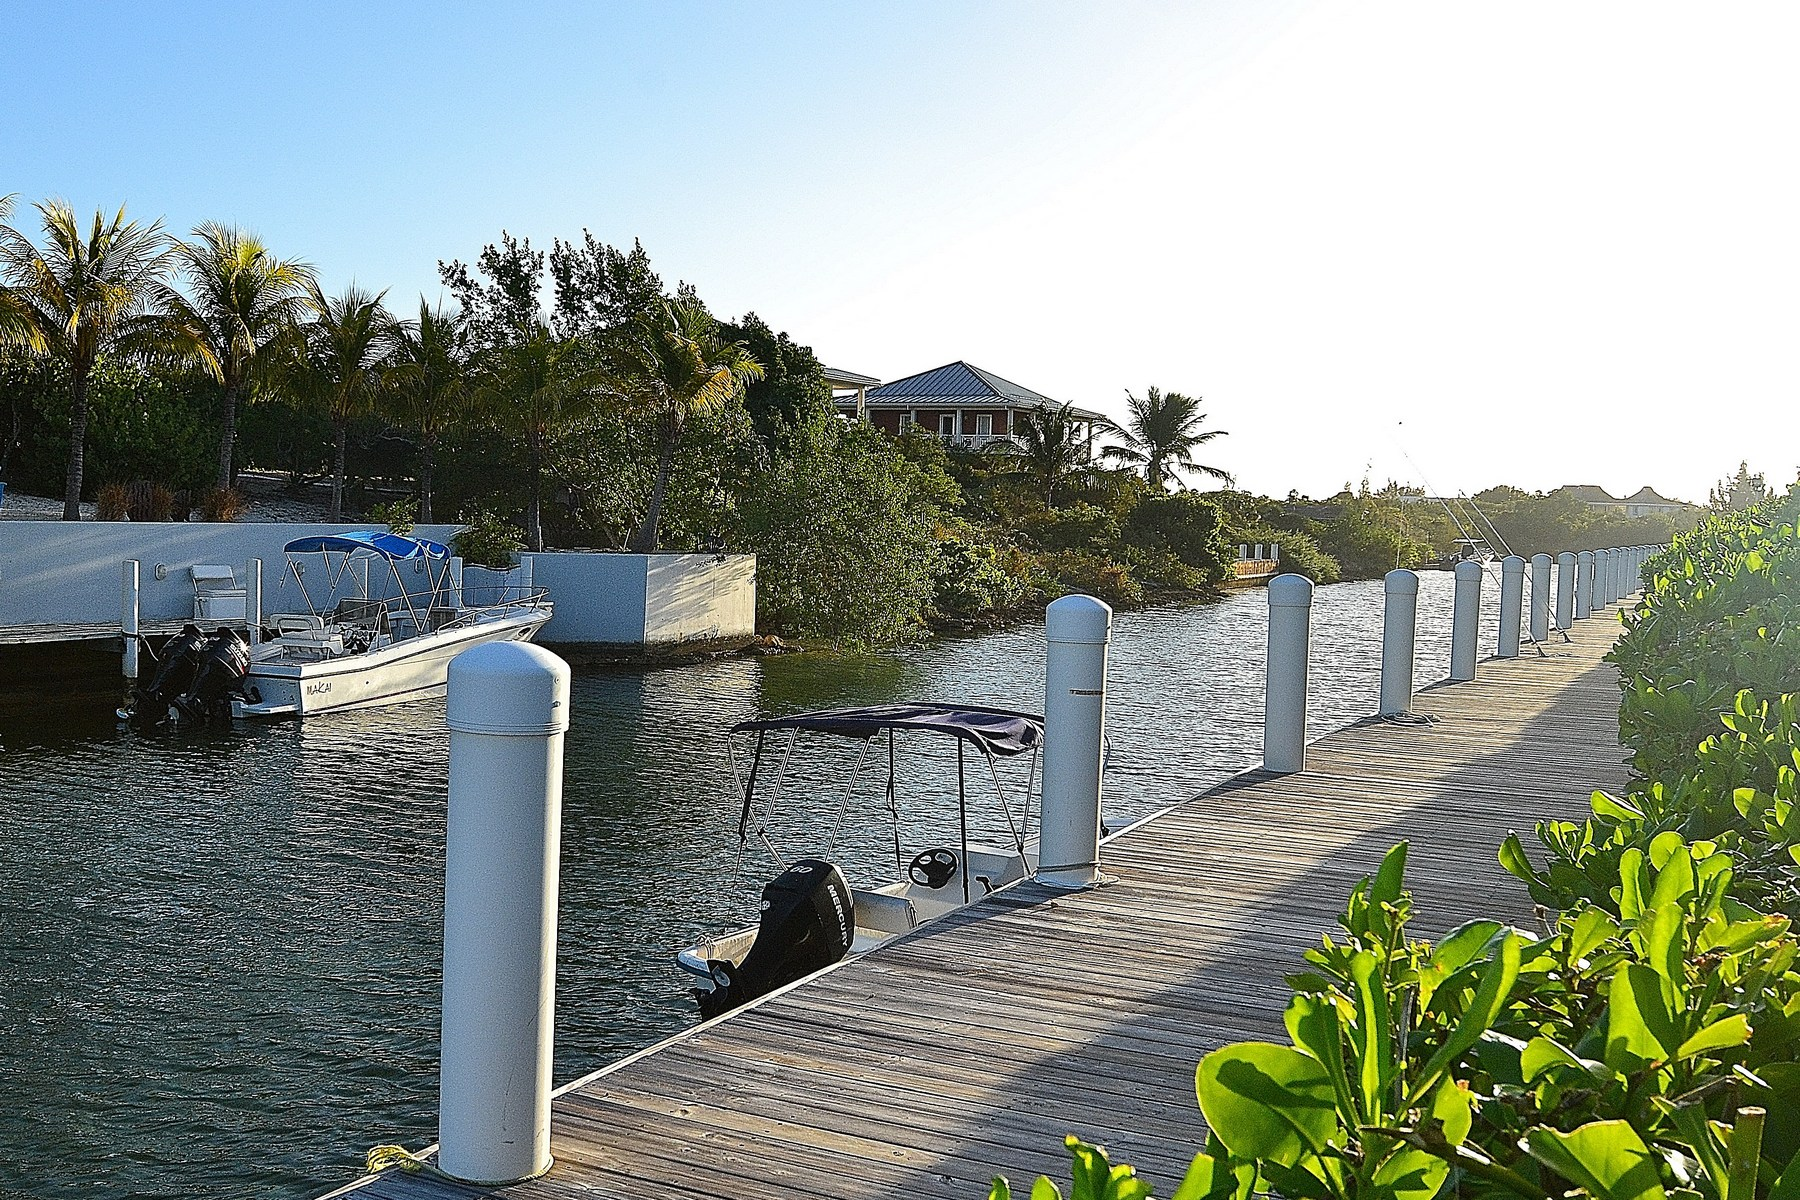 Additional photo for property listing at Seaflowers Townhome - Unit 1 Canalfront Turtle Cove, Providenciales TKCA 1ZZ Turks And Caicos Islands